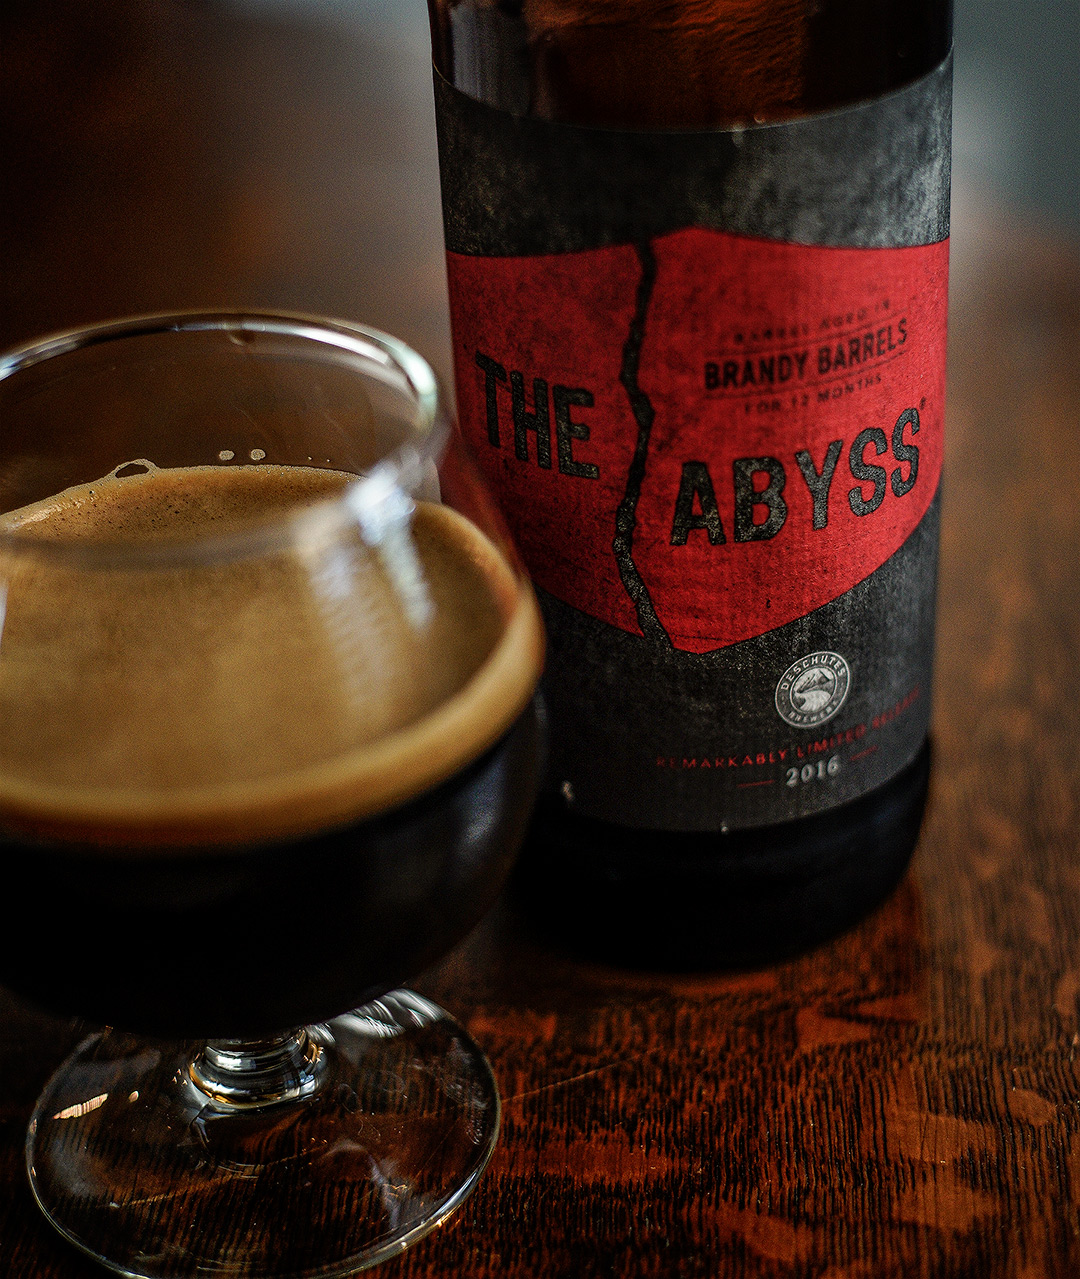 Deschutes Brandy Barrel Abyss Rocks Your Mouth Off